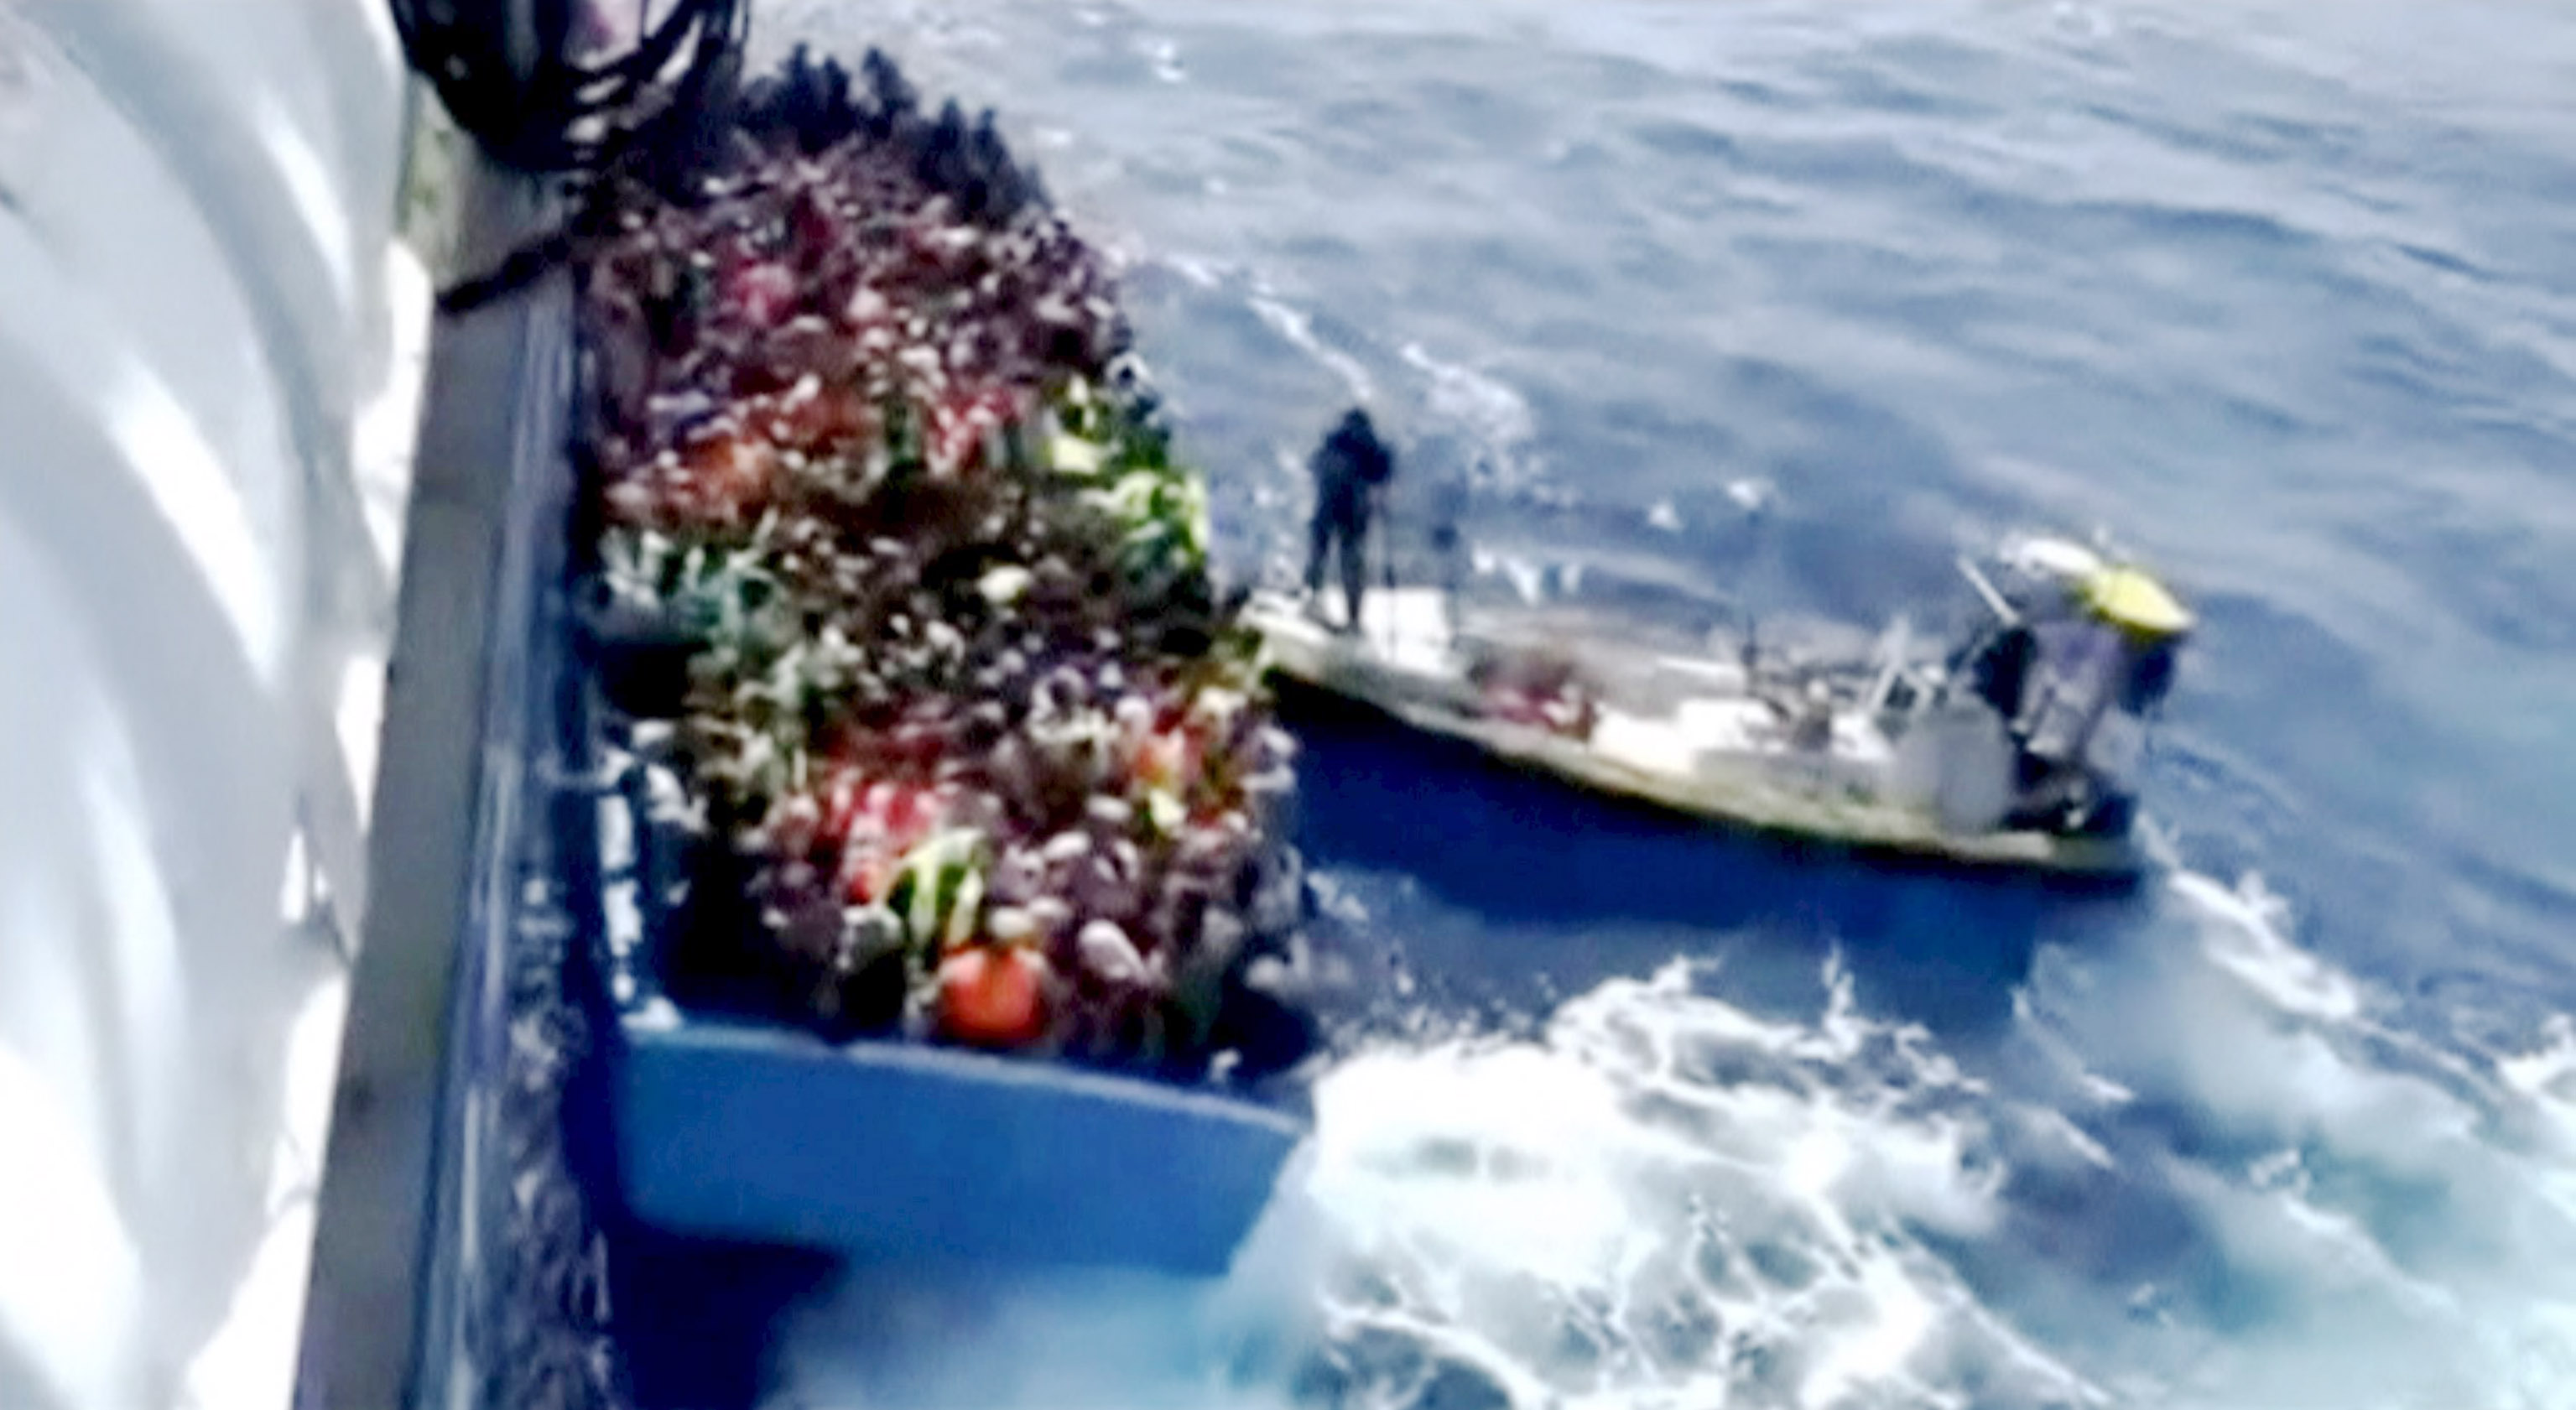 Many feared dead as boat packed with migrants sinks off Libya